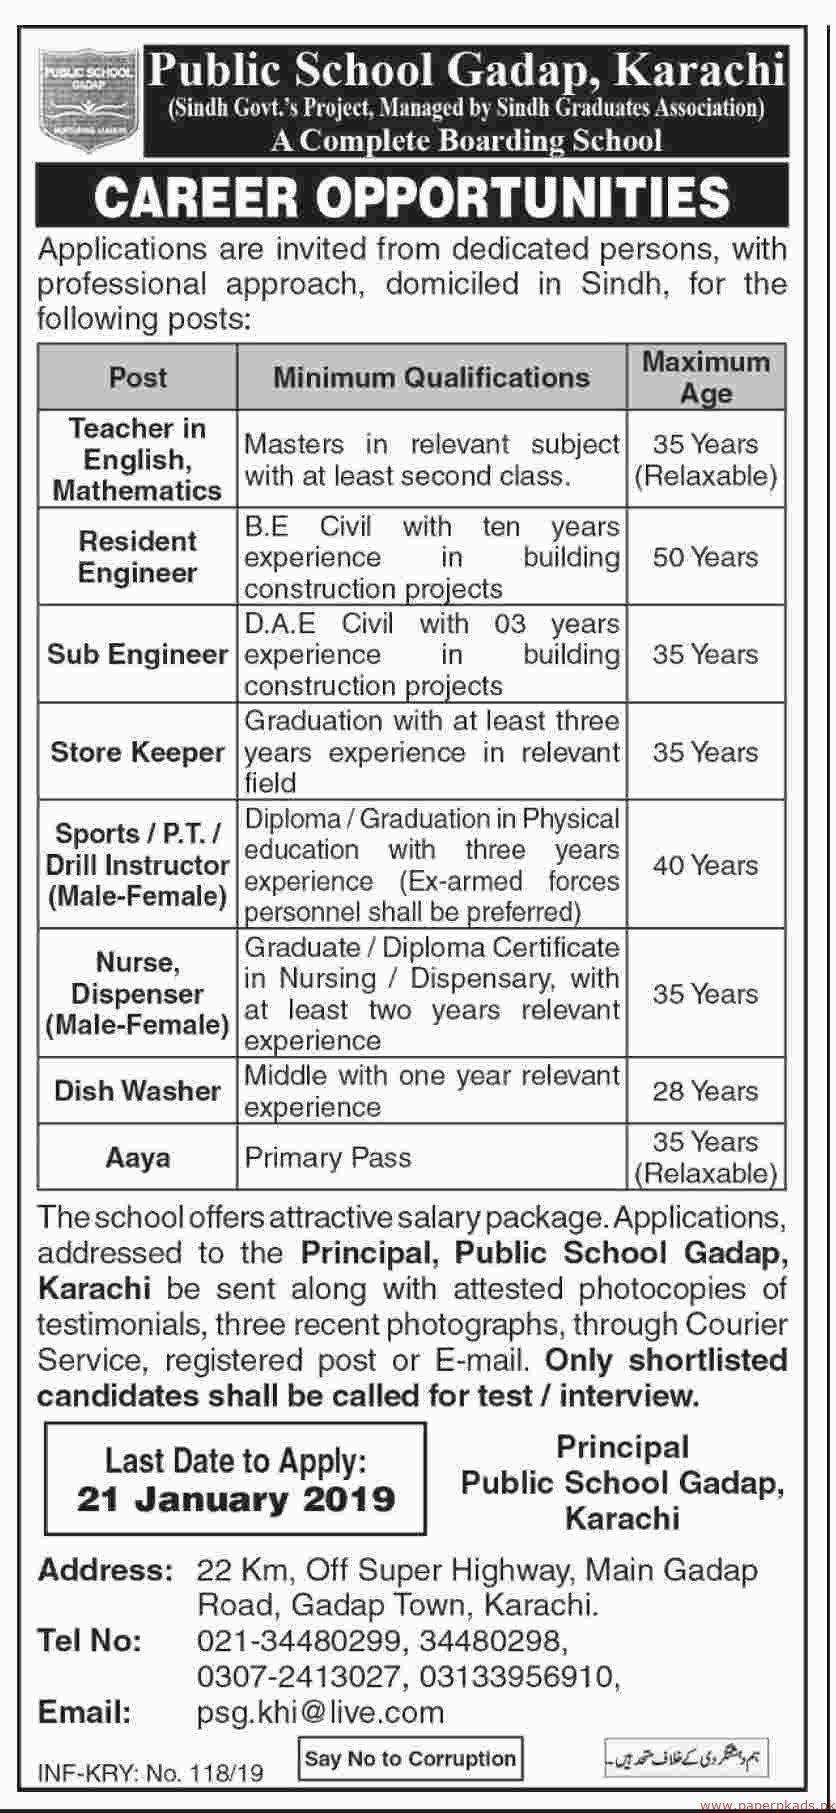 Public School Gadap Karachi Jobs 2019 Latest